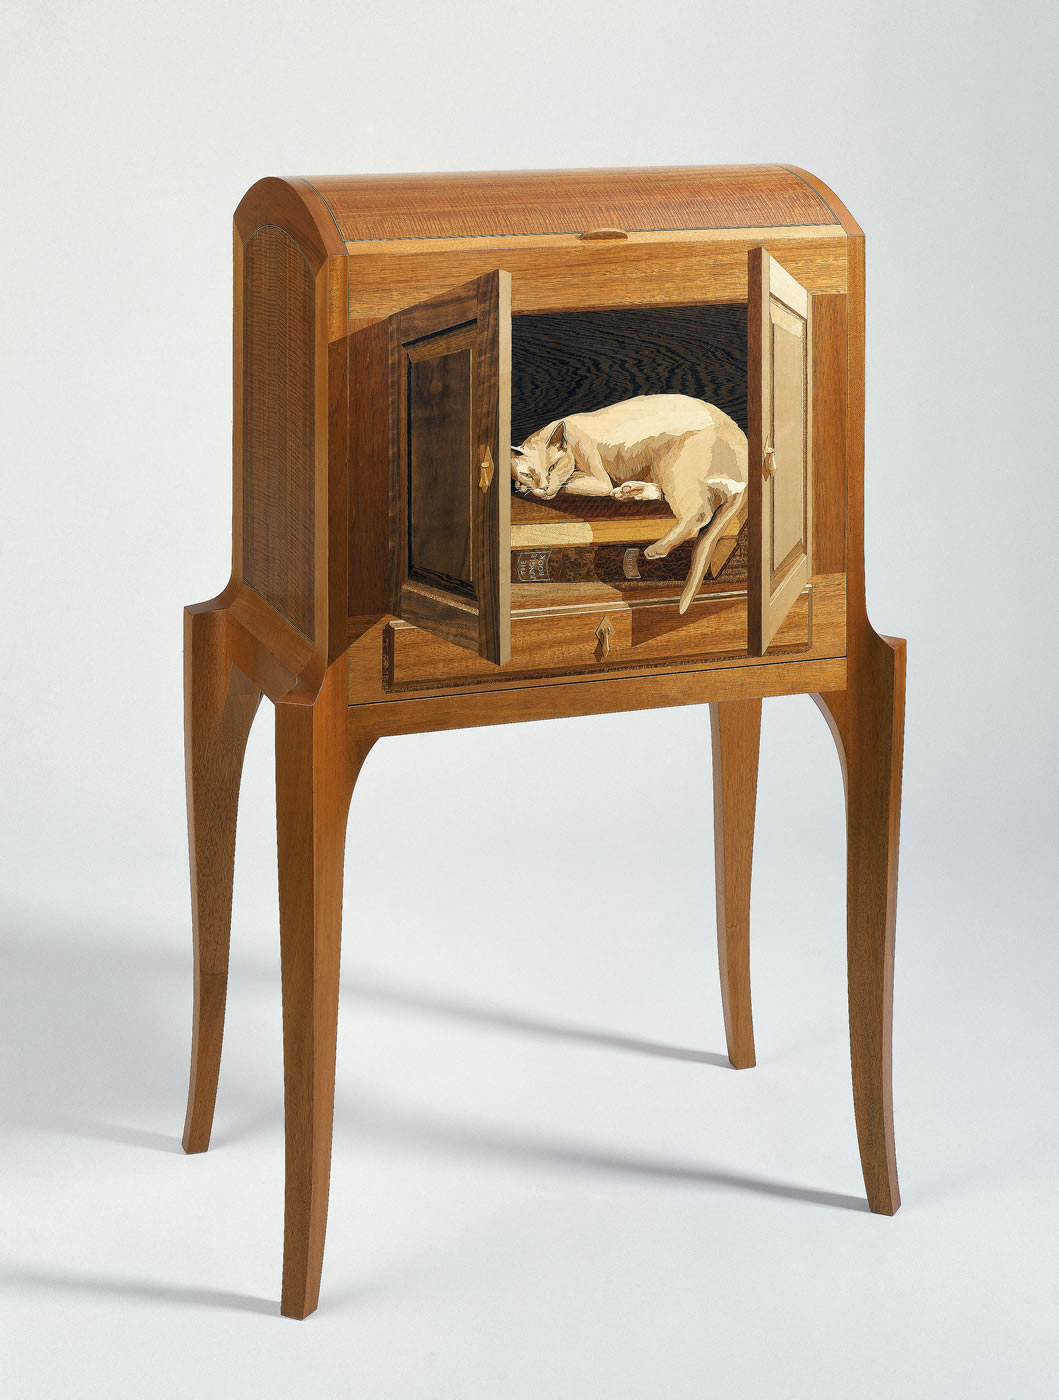 school desk chairs office chair arms or no animal – silas kopf woodworking inlaid wood marquetry studio furniture